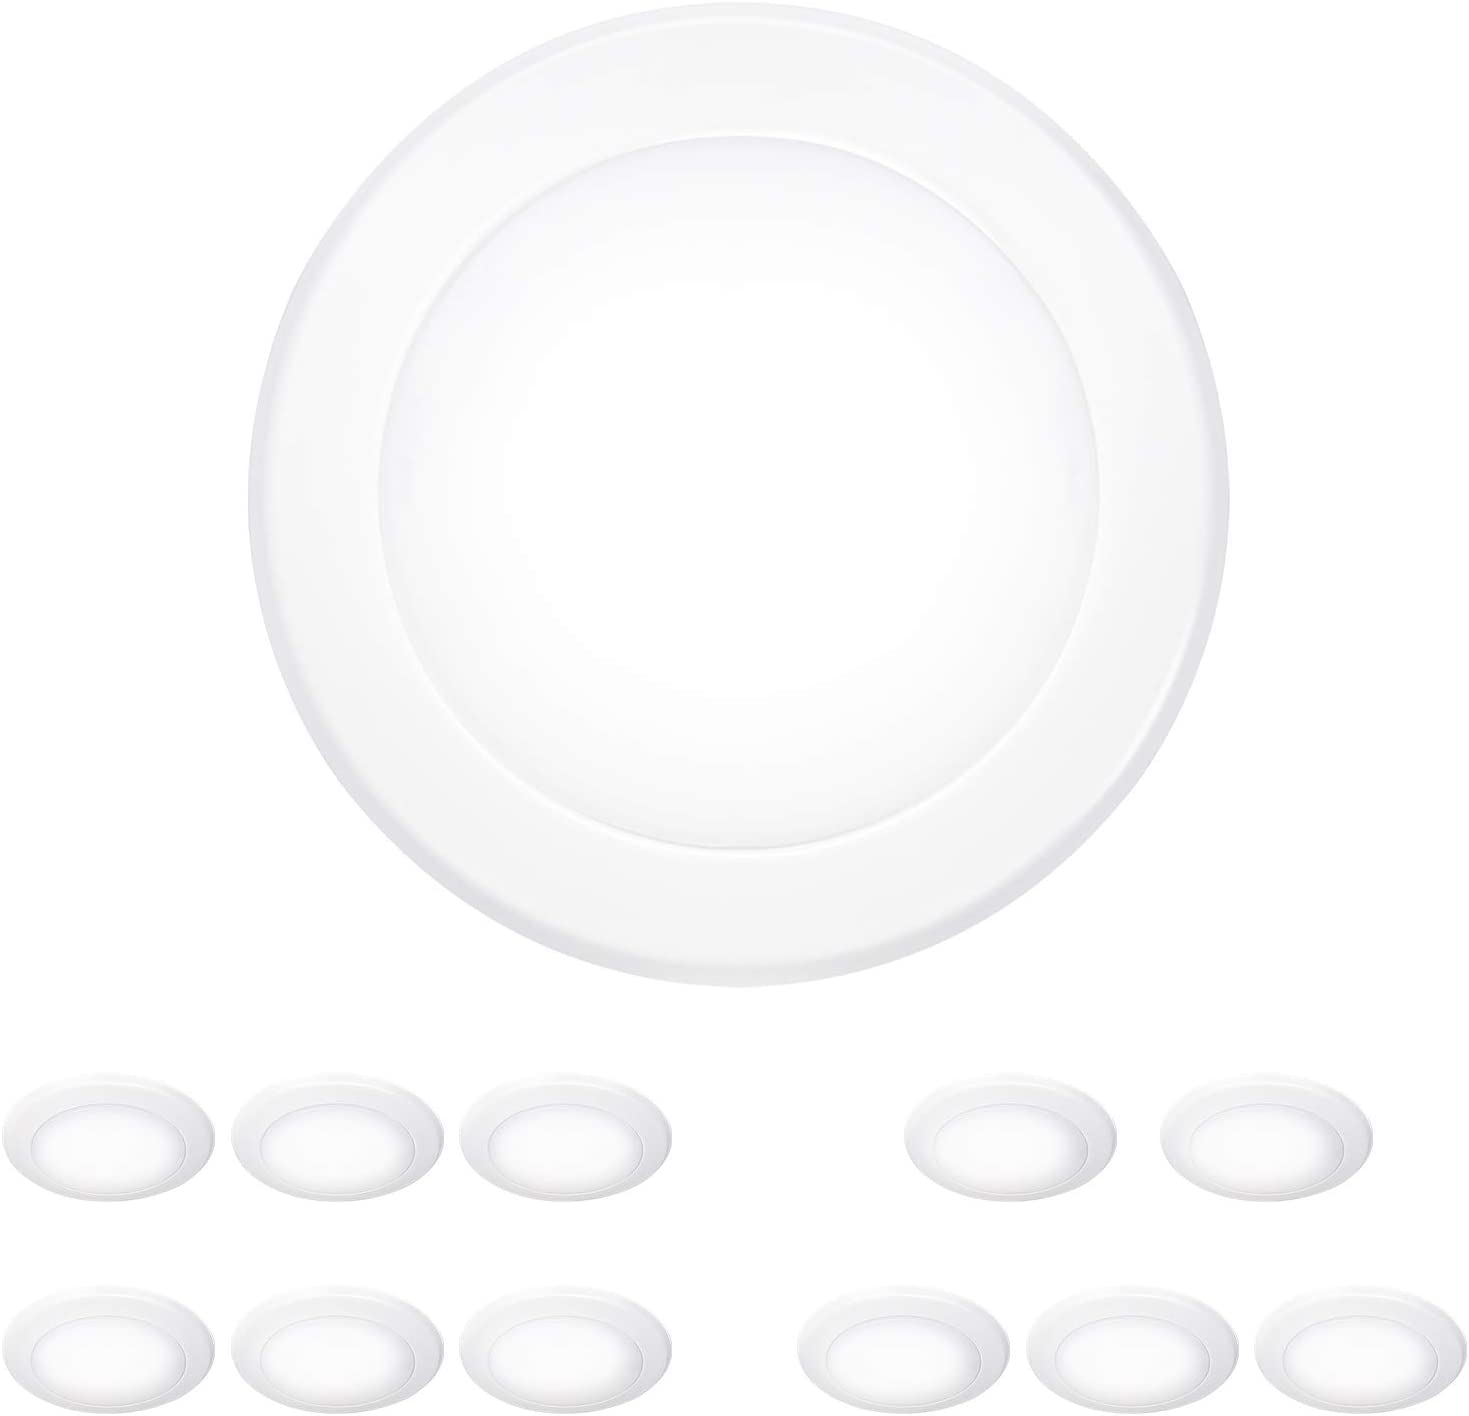 Hykolity 6 Inch Low Profile LED Disk Light, 12 Pack LED Flush Mount Ceiling Light, 15W=100W, 3000K Warm White, 1000lm, CRI90, Dimmable, Damp Rated, Hardwire to Most Junction Box, Recessed Housing Can